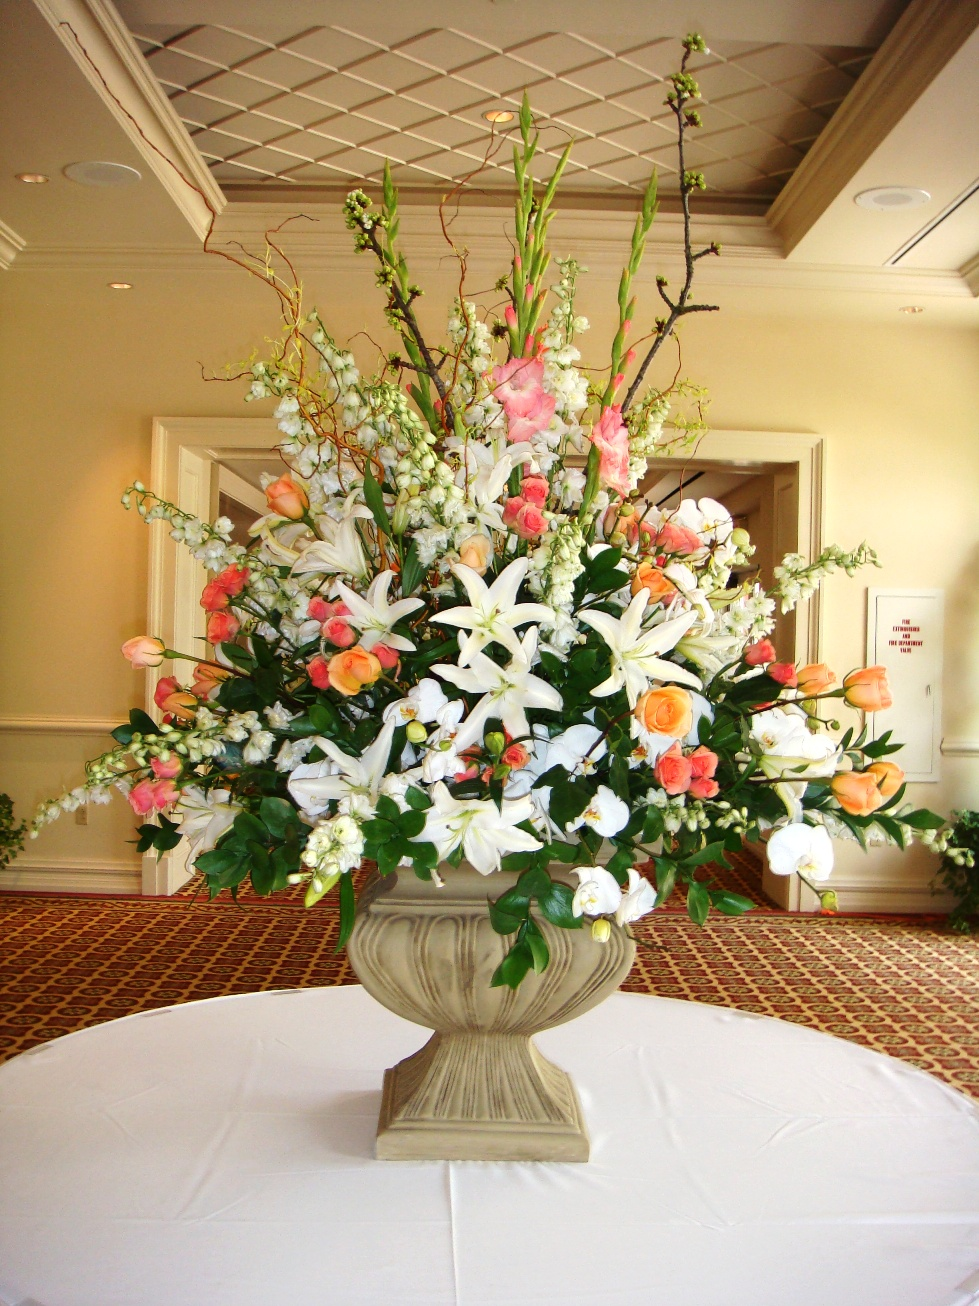 floral pedestal large floral arrangement in stone pedestal container the wedding flowers. Black Bedroom Furniture Sets. Home Design Ideas